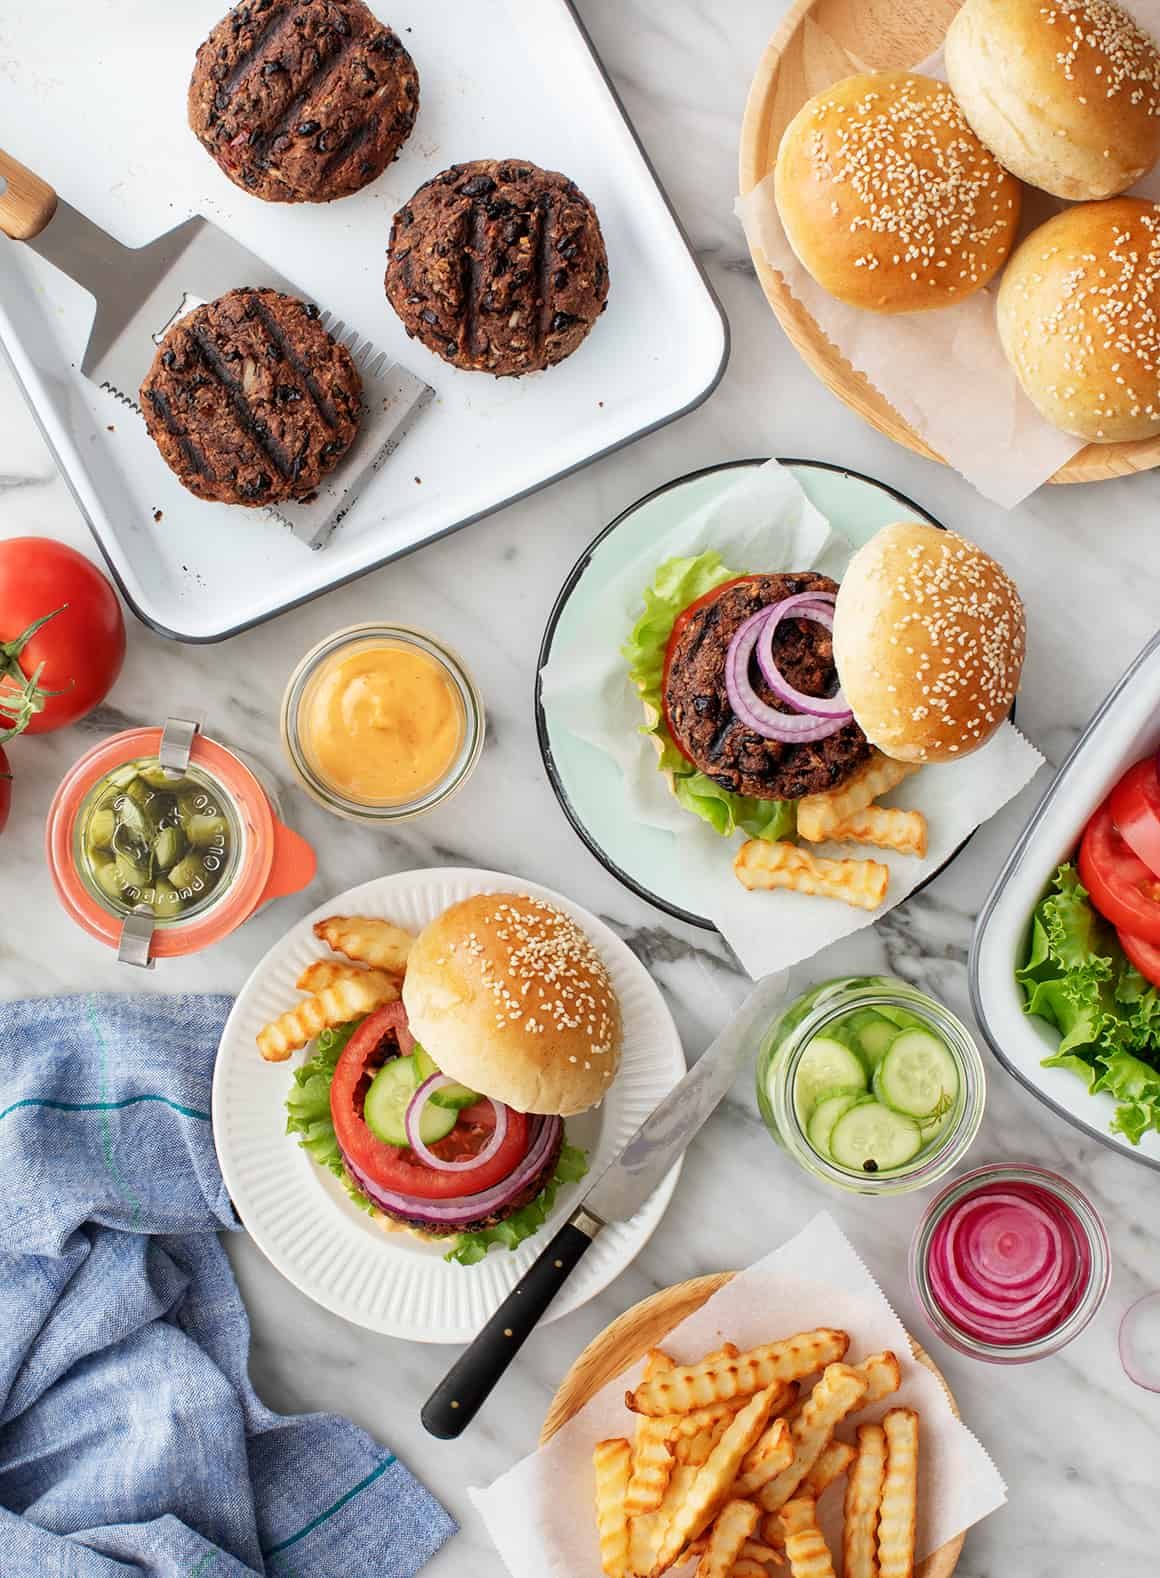 Best black bean burger recipe with buns and toppings